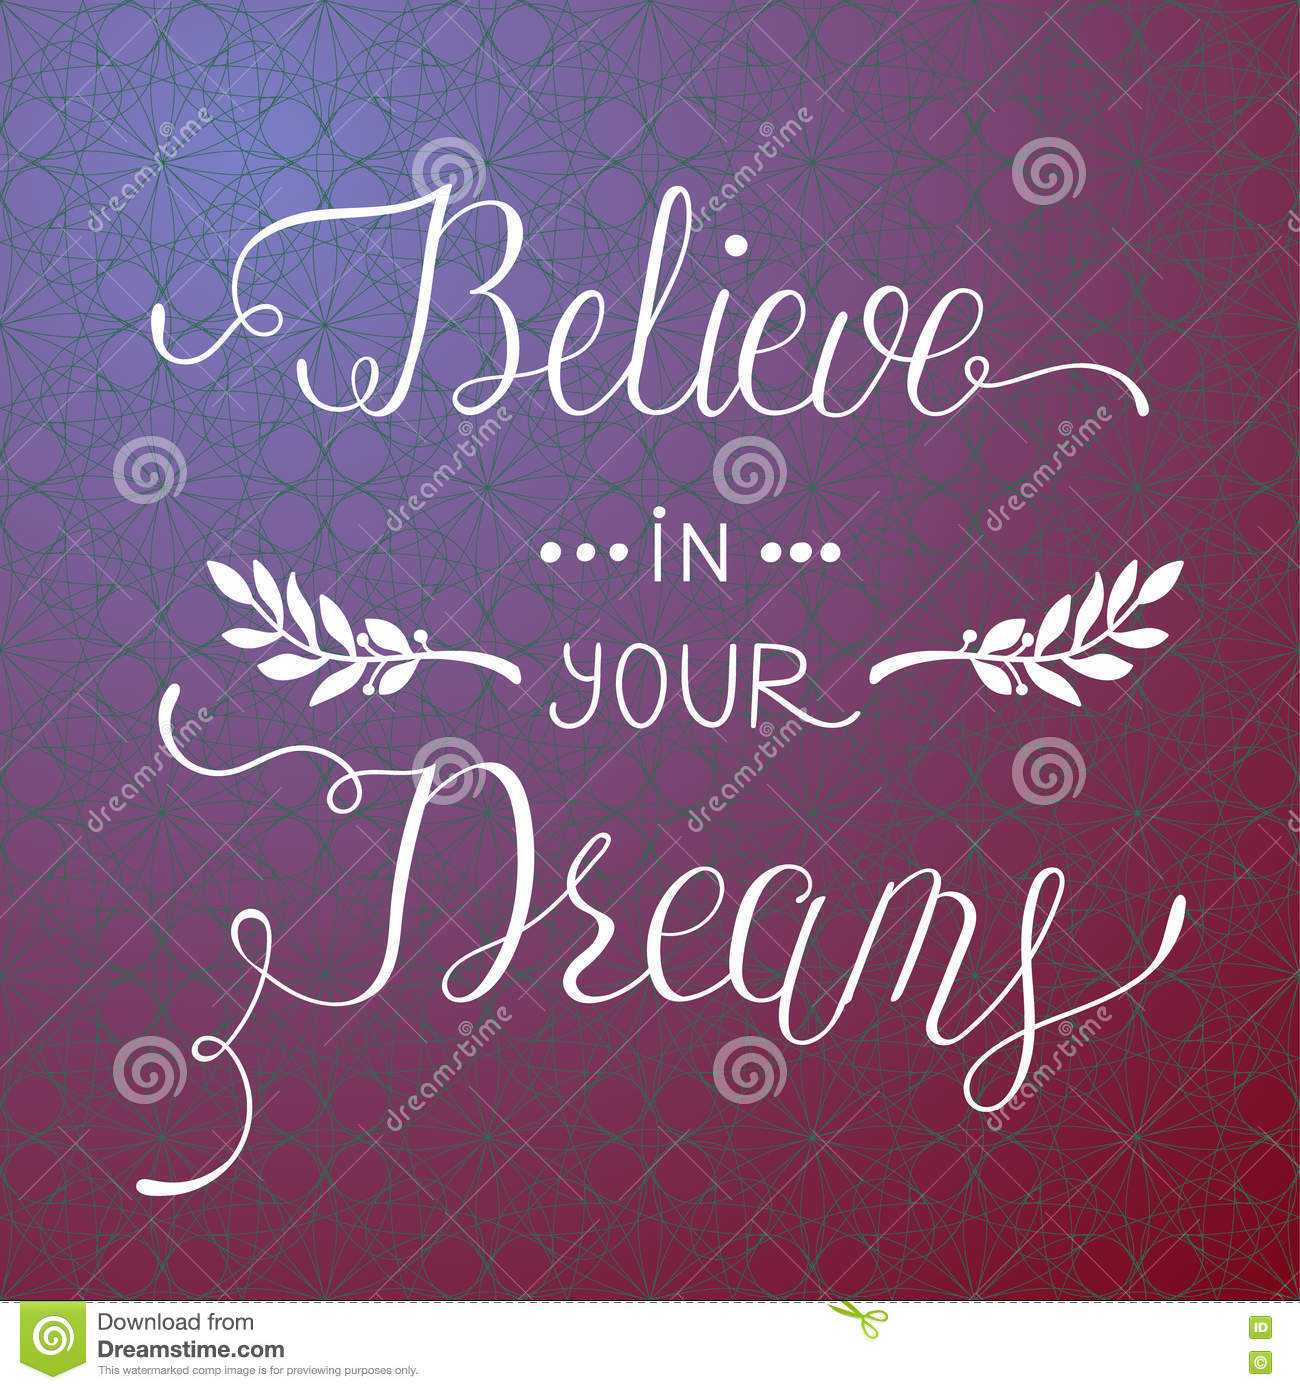 Believe In Your Dreams Quotes | www.galleryhip.com - The Hippest Pics